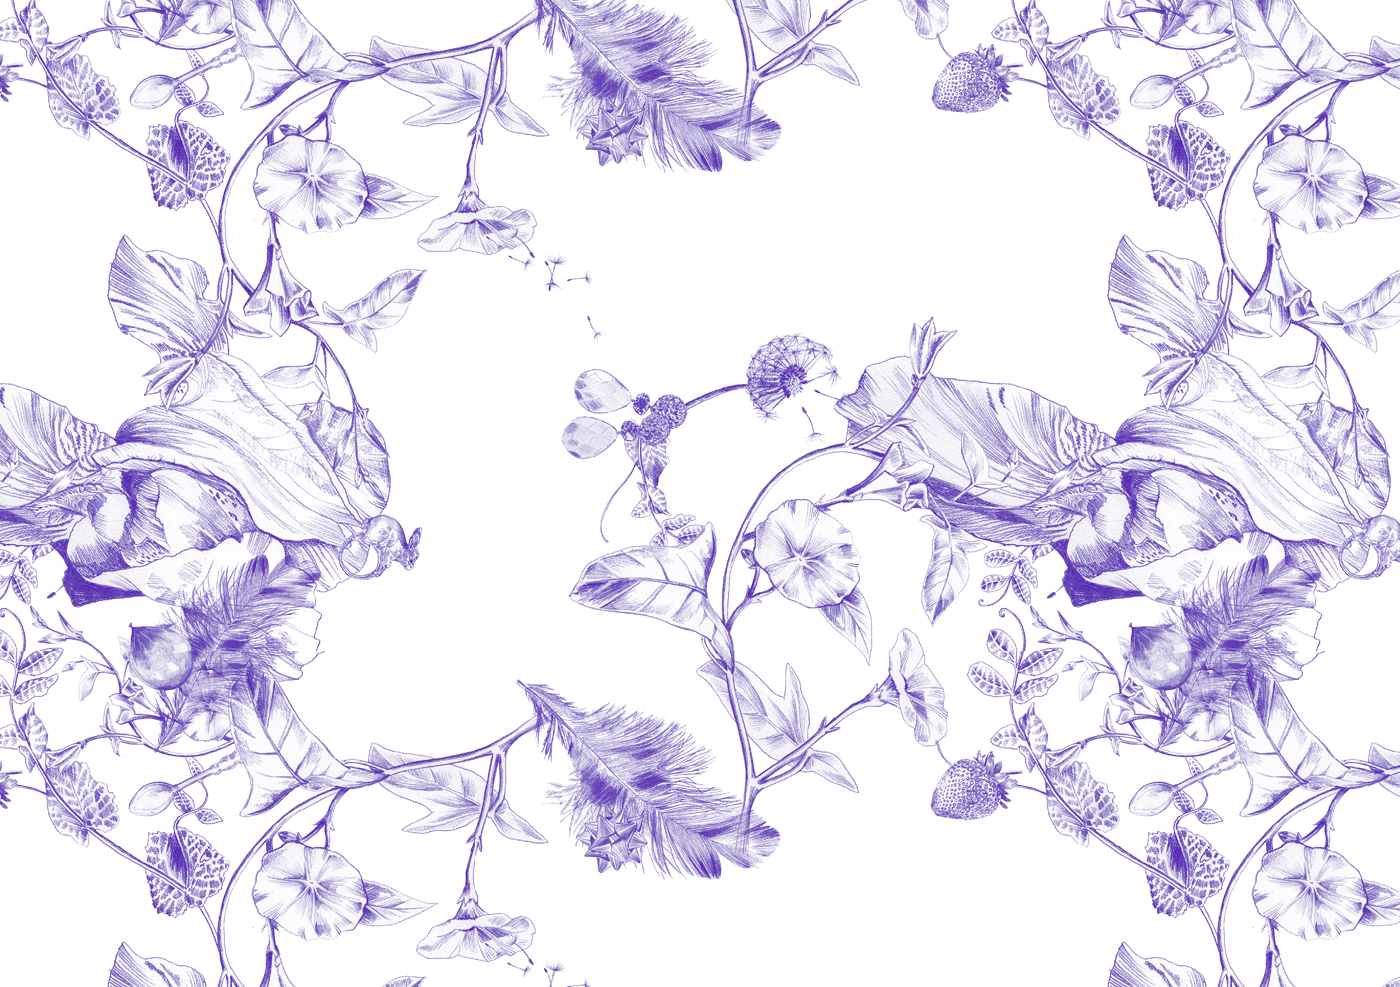 fig. 1. Repeat pattern, floral themed